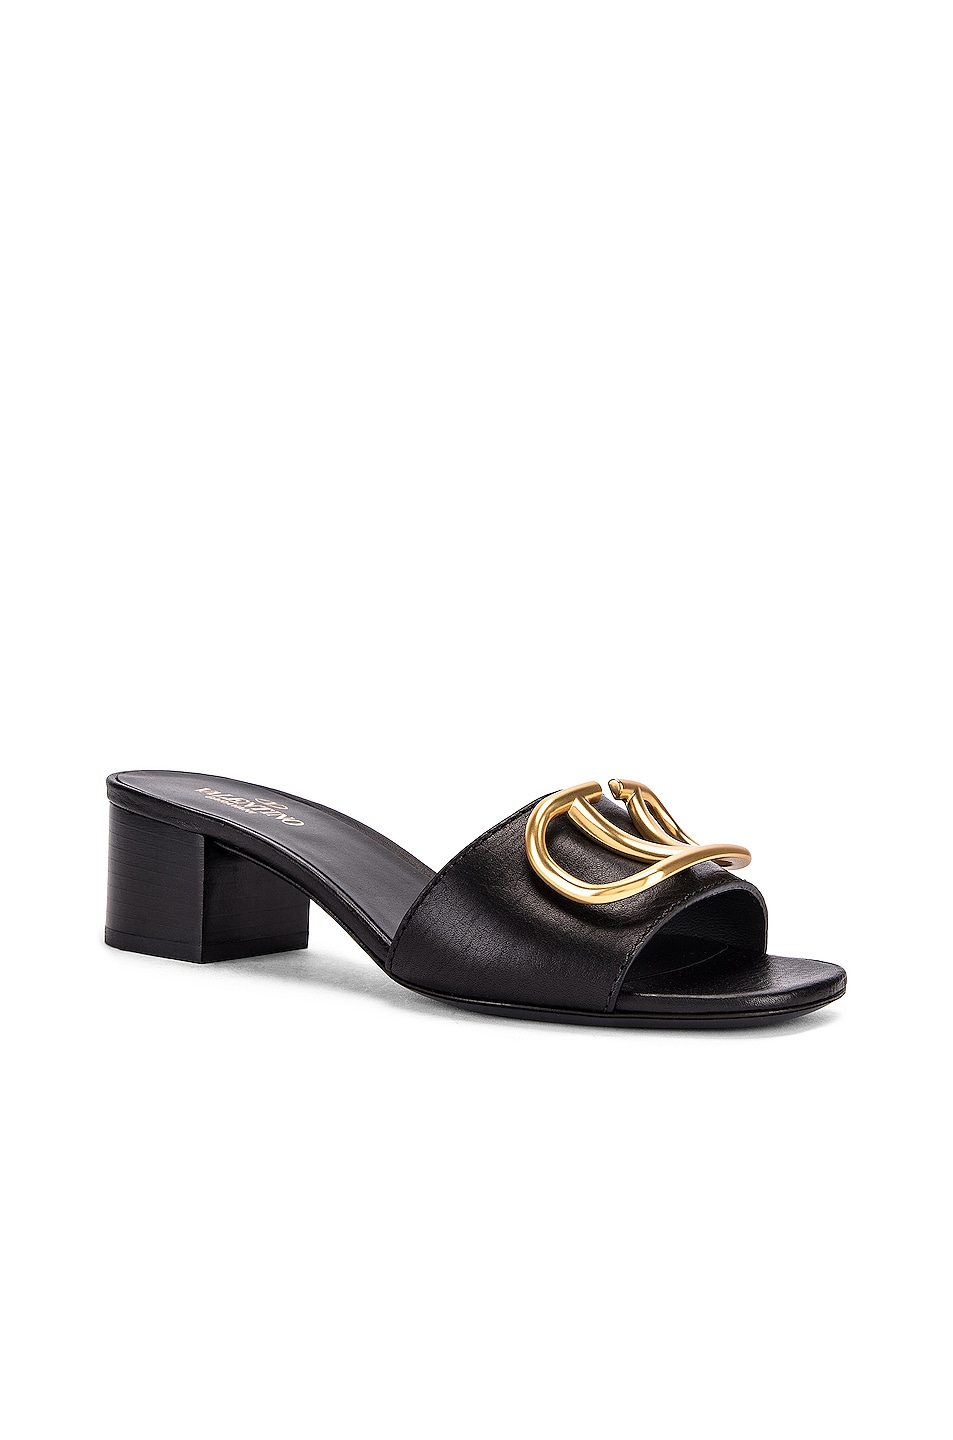 Image 3 of Valentino VLogo Slides in Black